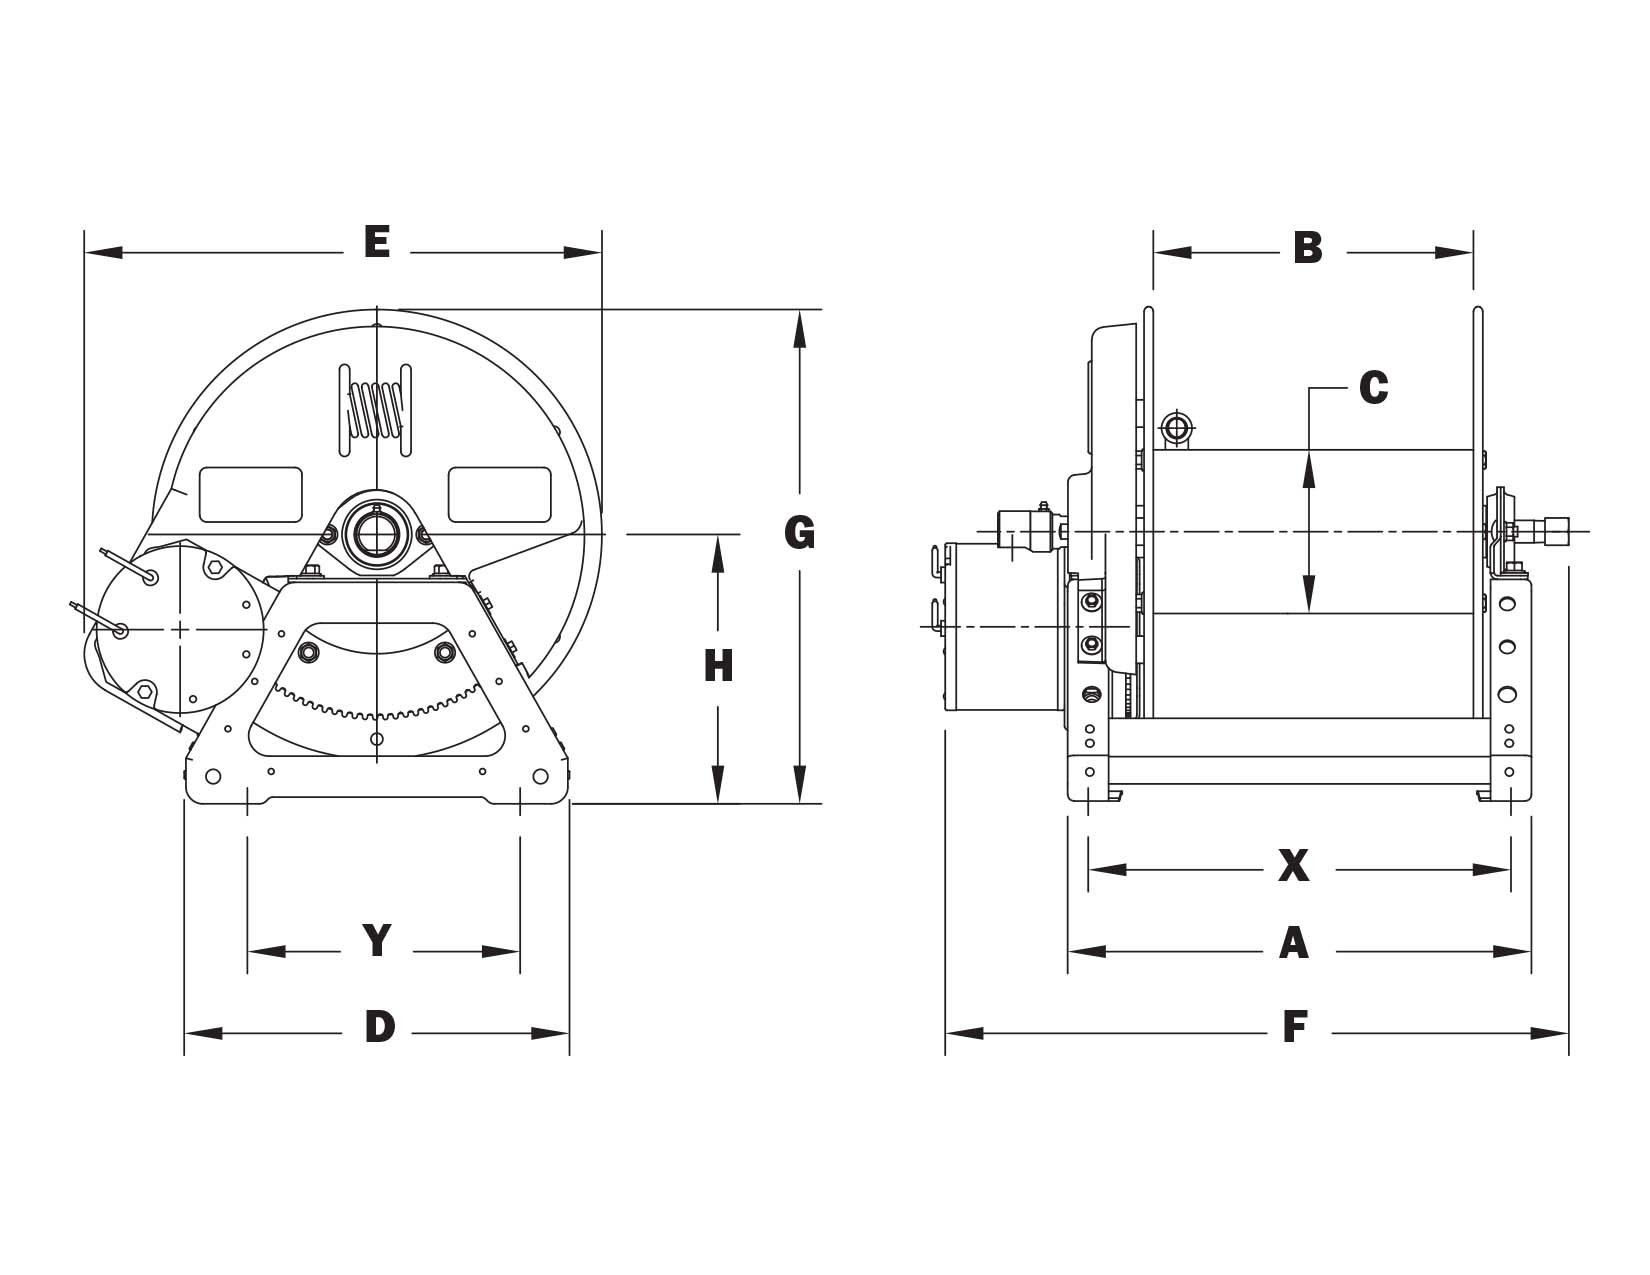 F1500 Schematic_1492439342 f1500 series hannay reels official site hannay reel wiring diagram at panicattacktreatment.co